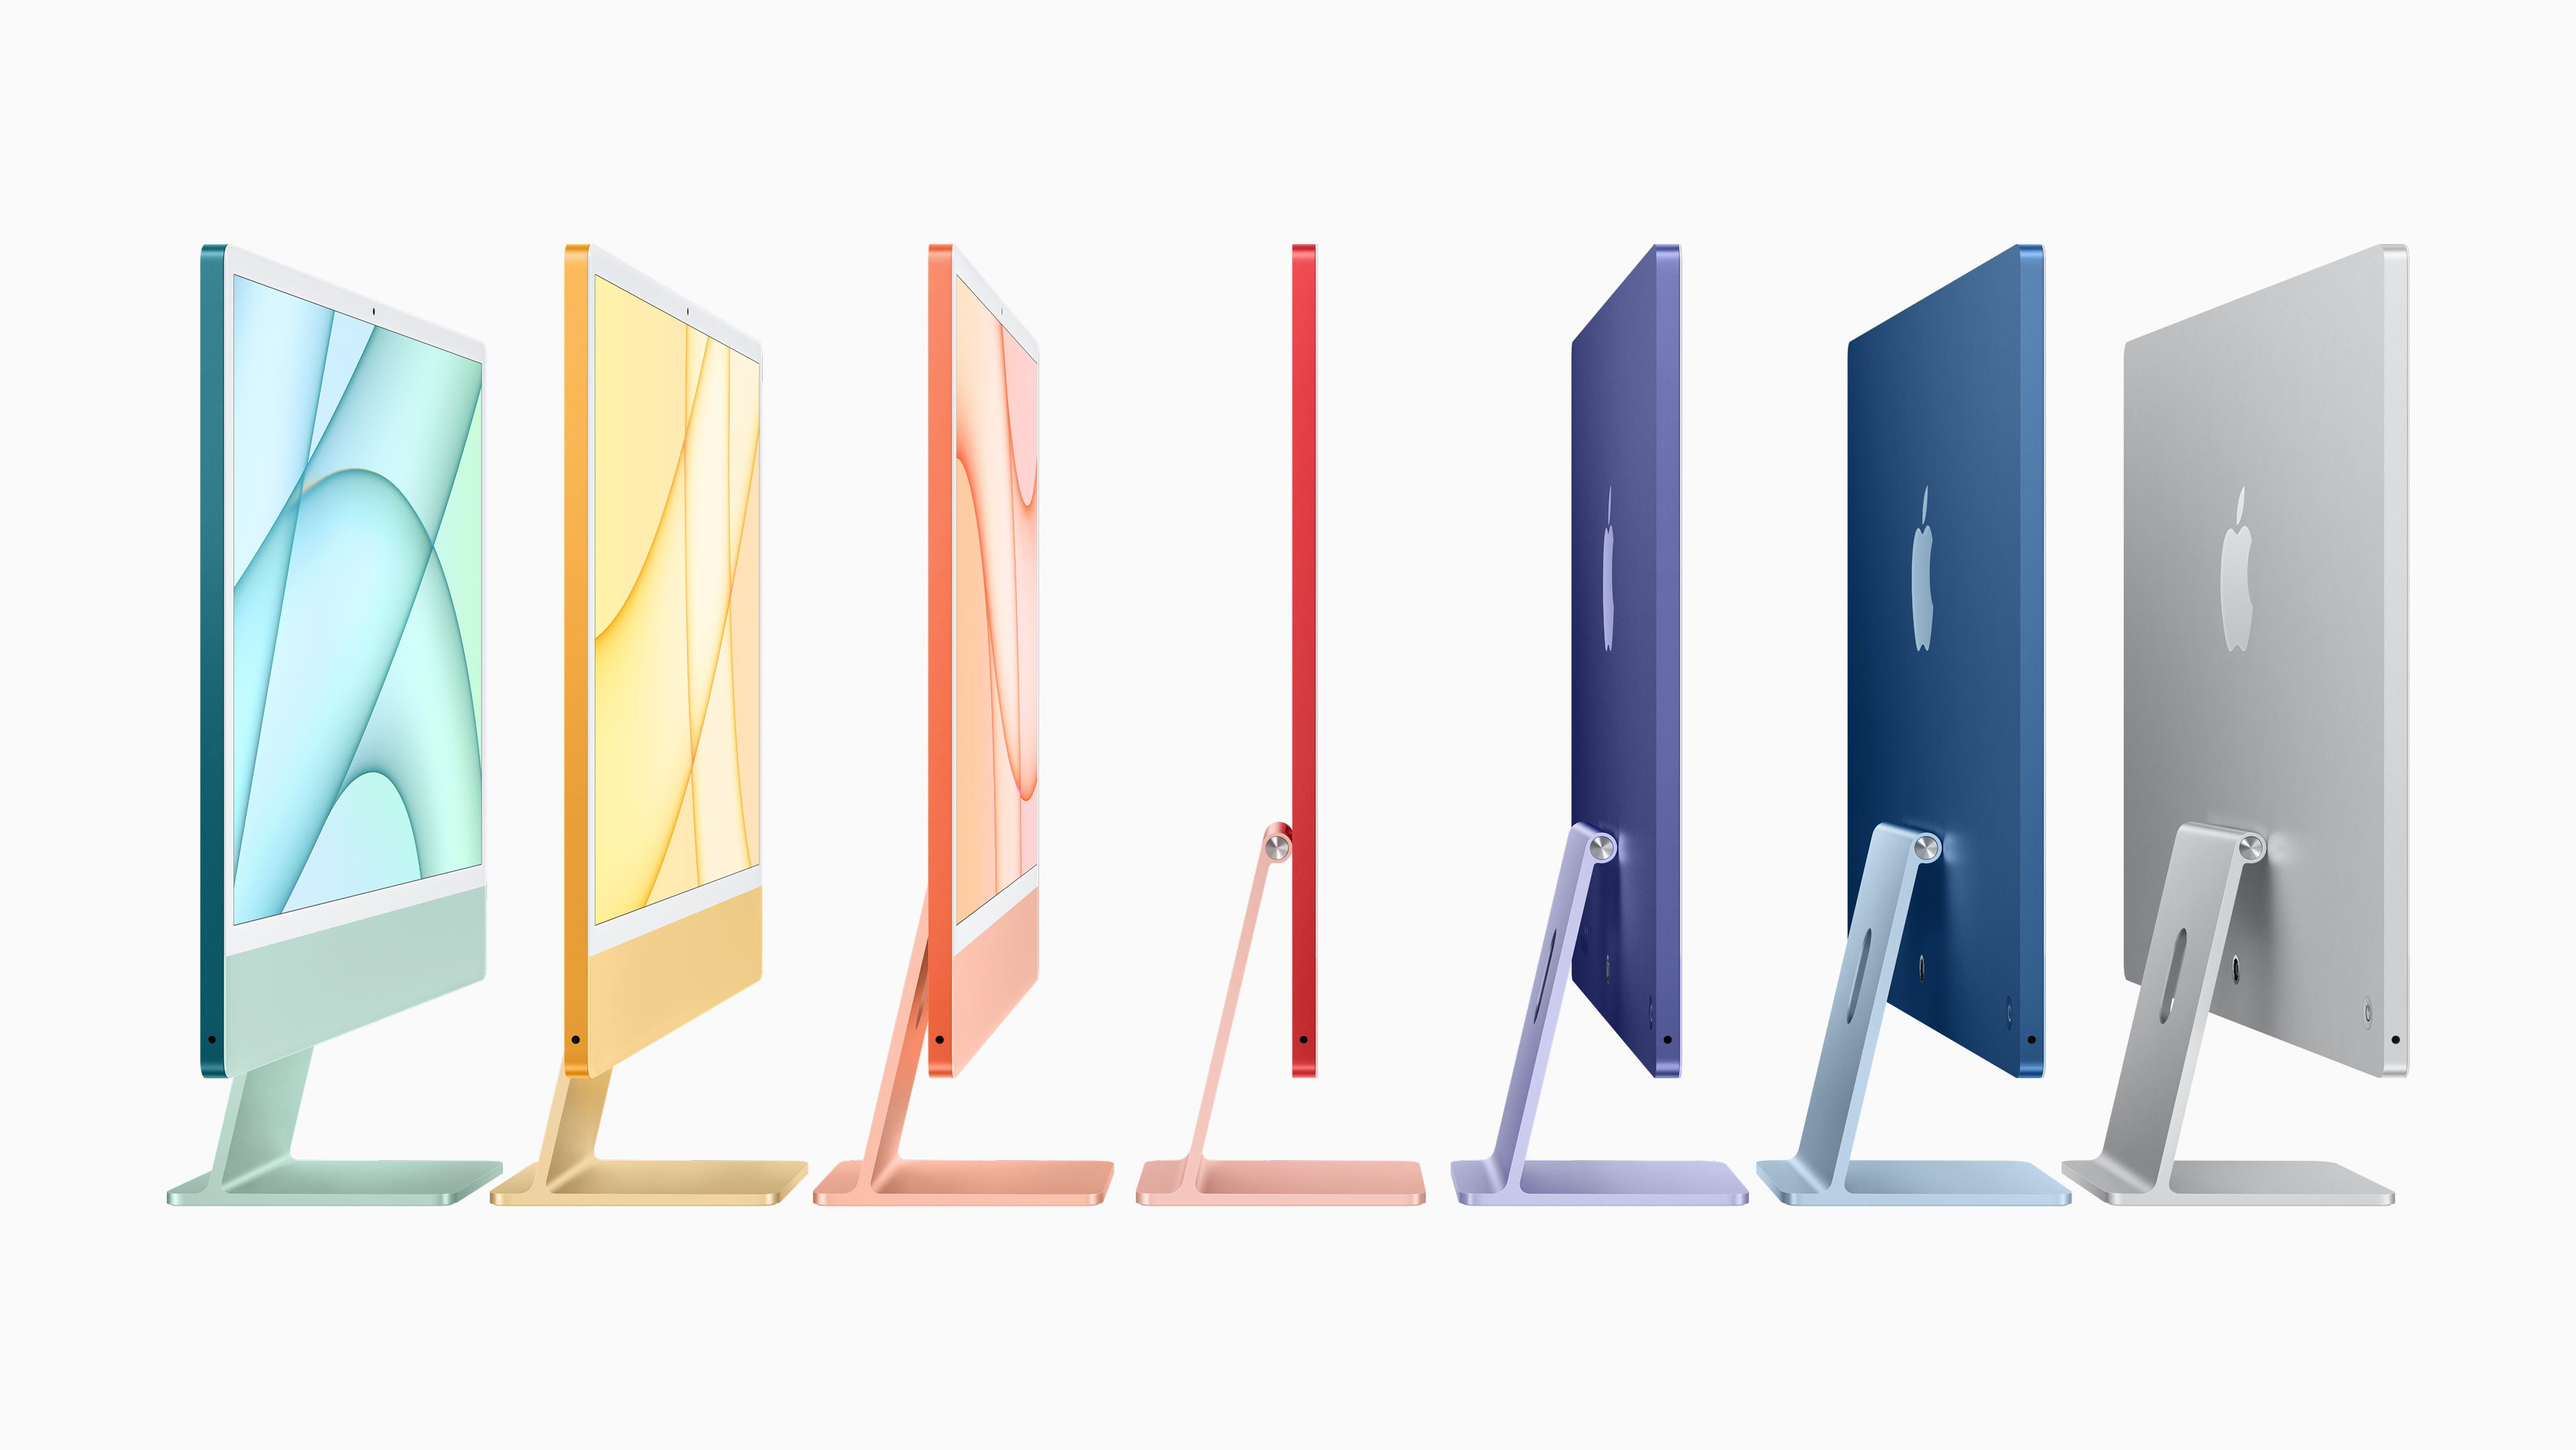 Survey Finds 60% of iOS Device Owners Will Buy AirTag, Blue Is Most Popular iMac Color, and More